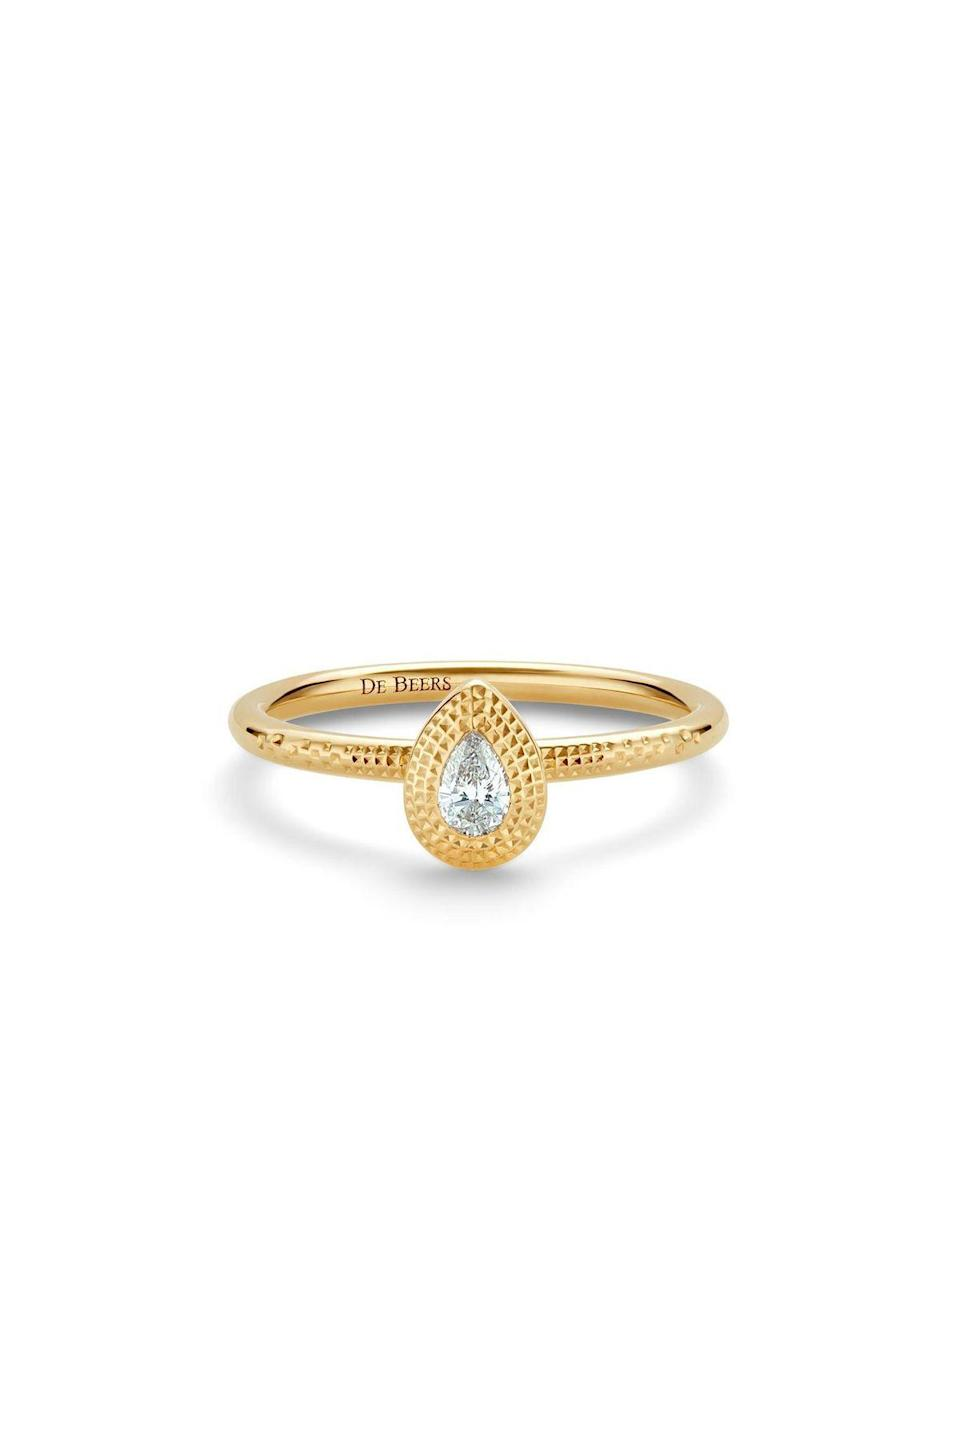 """<p><strong>De Beers</strong></p><p>debeers.com</p><p><strong>$1550.00</strong></p><p><a href=""""https://www.debeers.com/en-us/talisman-pear-shaped-diamond-ring-in-yellow-gold/R102391.html"""" rel=""""nofollow noopener"""" target=""""_blank"""" data-ylk=""""slk:Shop Now"""" class=""""link rapid-noclick-resp"""">Shop Now</a></p><p>A hand-hammered finish and a rough diamonds make this solitaire stand out from the rest. </p>"""